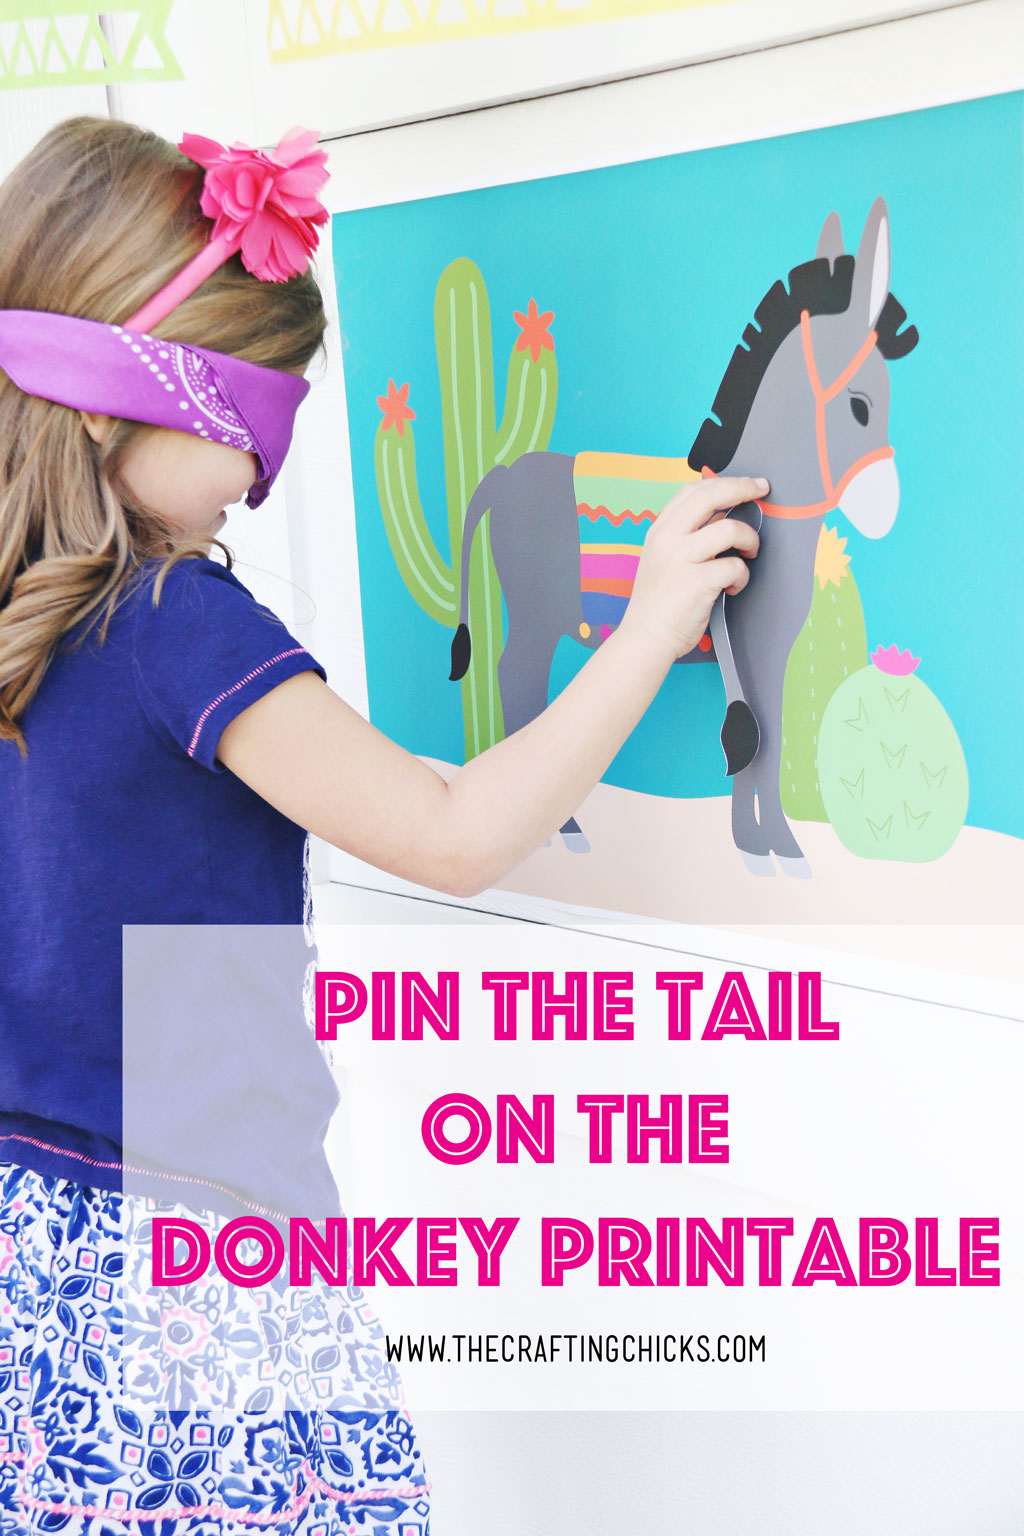 picture relating to Pin the Tail on the Donkey Printable identified as Pin the Tail upon the Donkey - The Writing Chicks